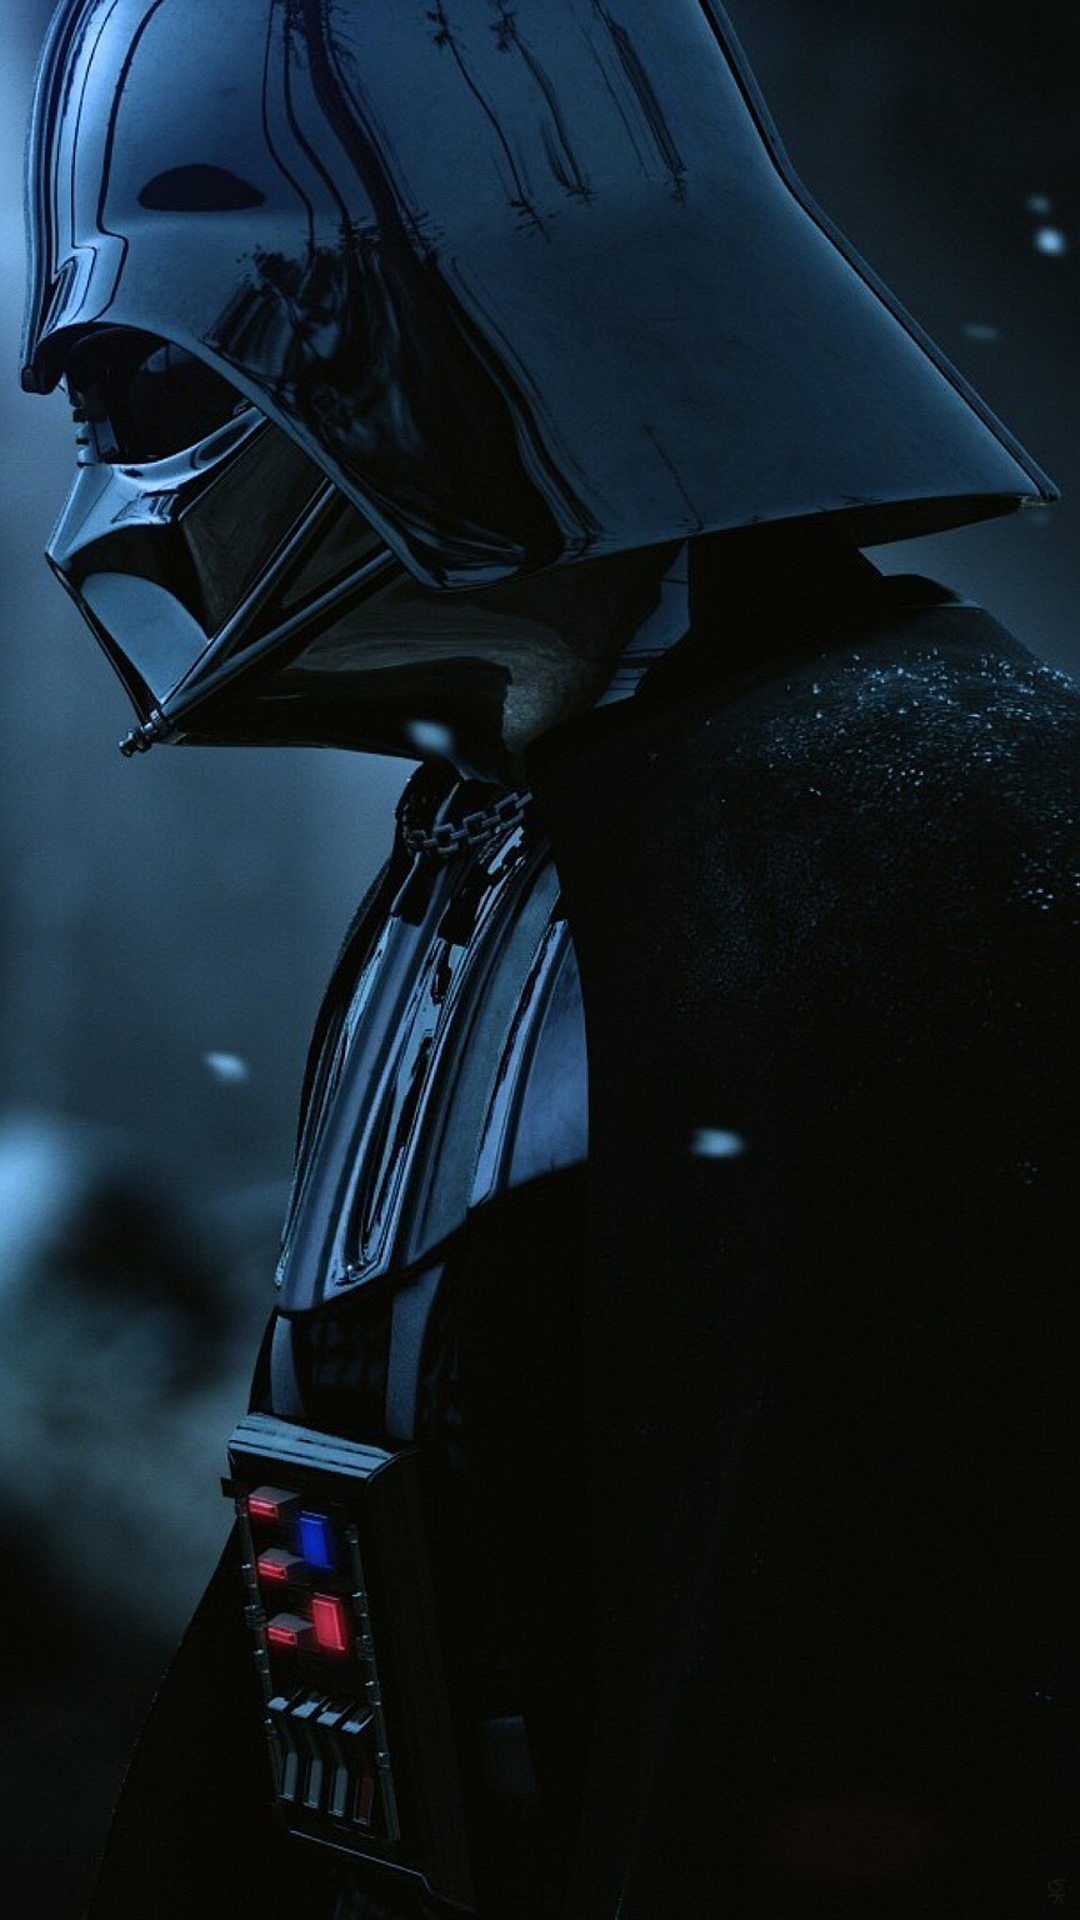 Darth Vader Wallpaper 1080p Vader Star Wars Star Wars Wallpaper Star Wars Geek